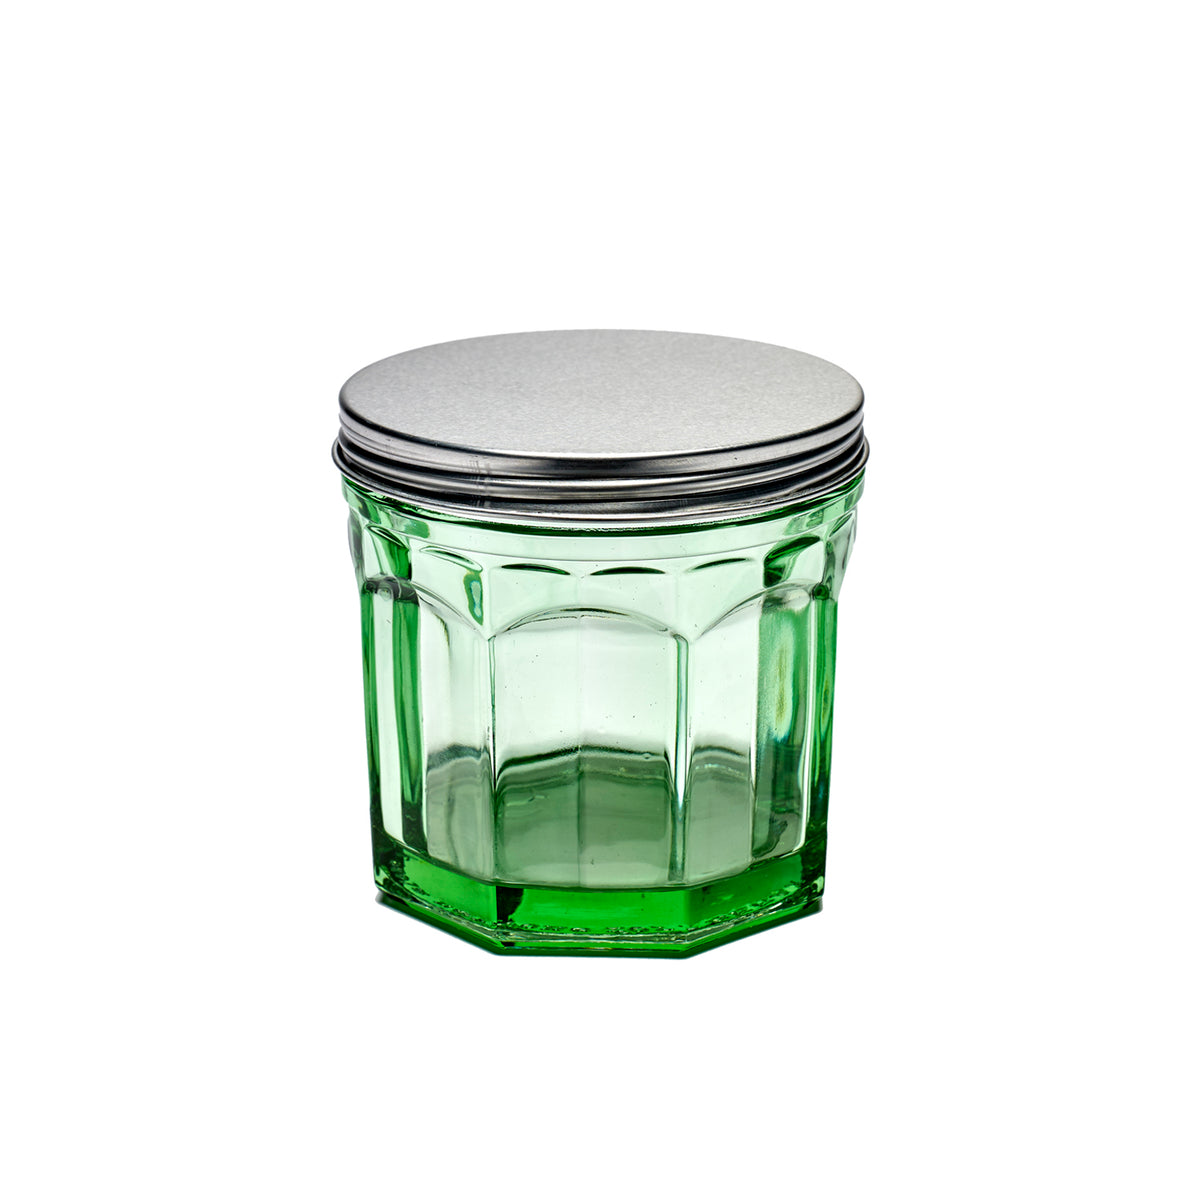 Storage Jar with Lid